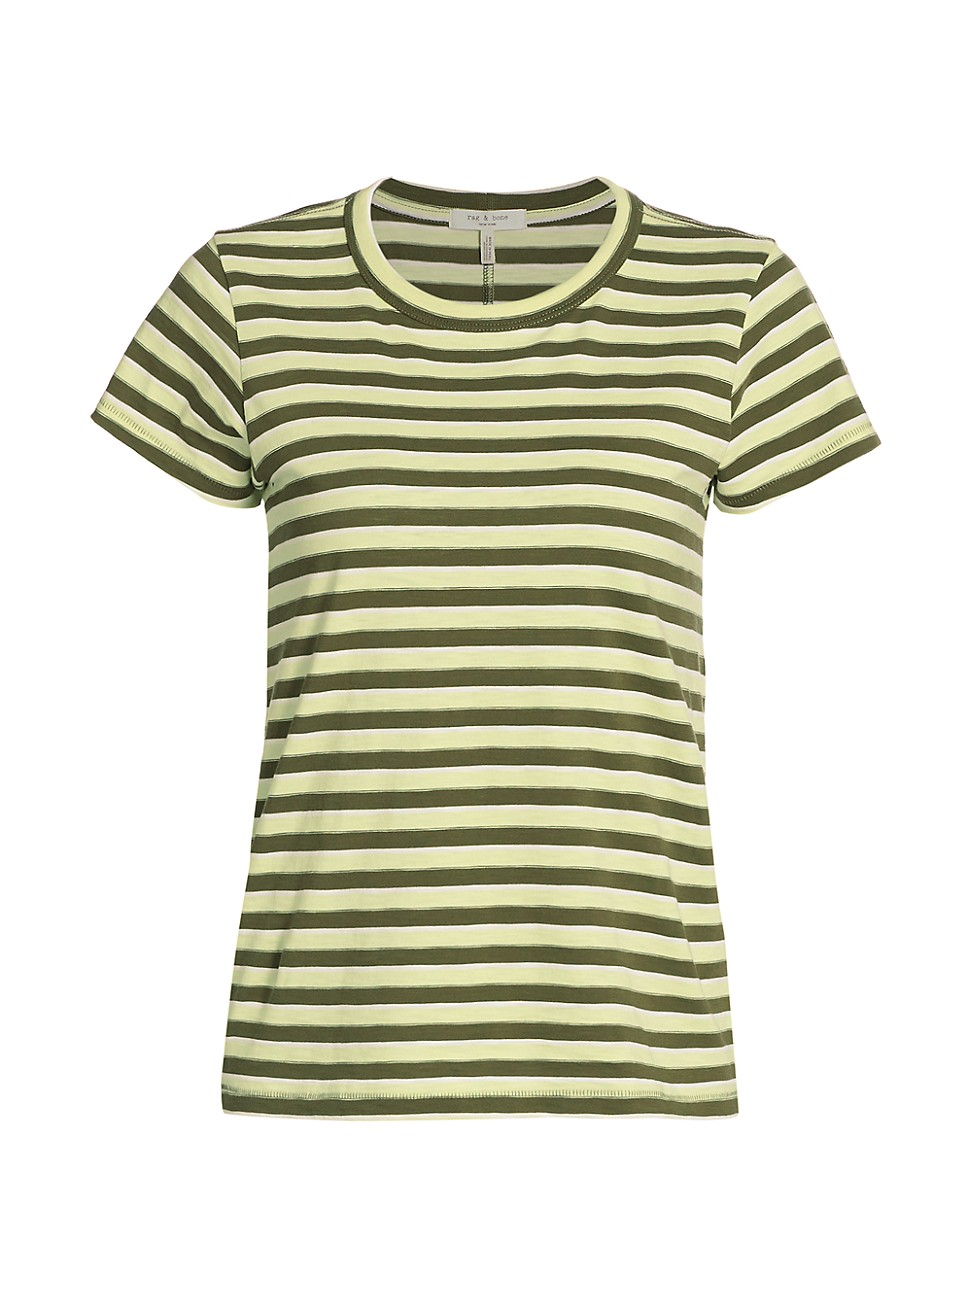 Rag & Bone WOMEN'S THE SLUB STRIPED T-SHIRT